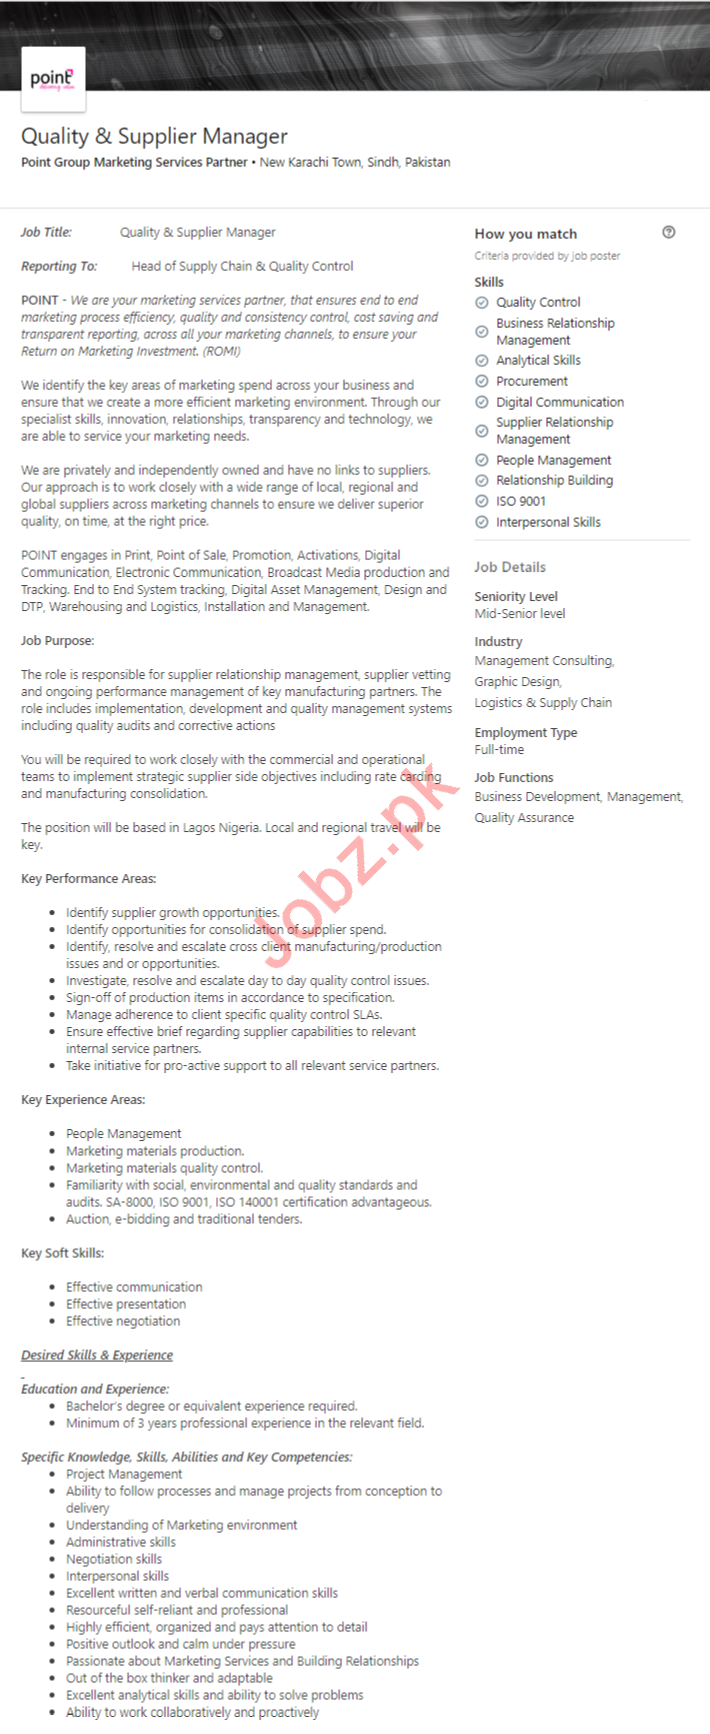 Quality & Supplier Manager Job in Karachi